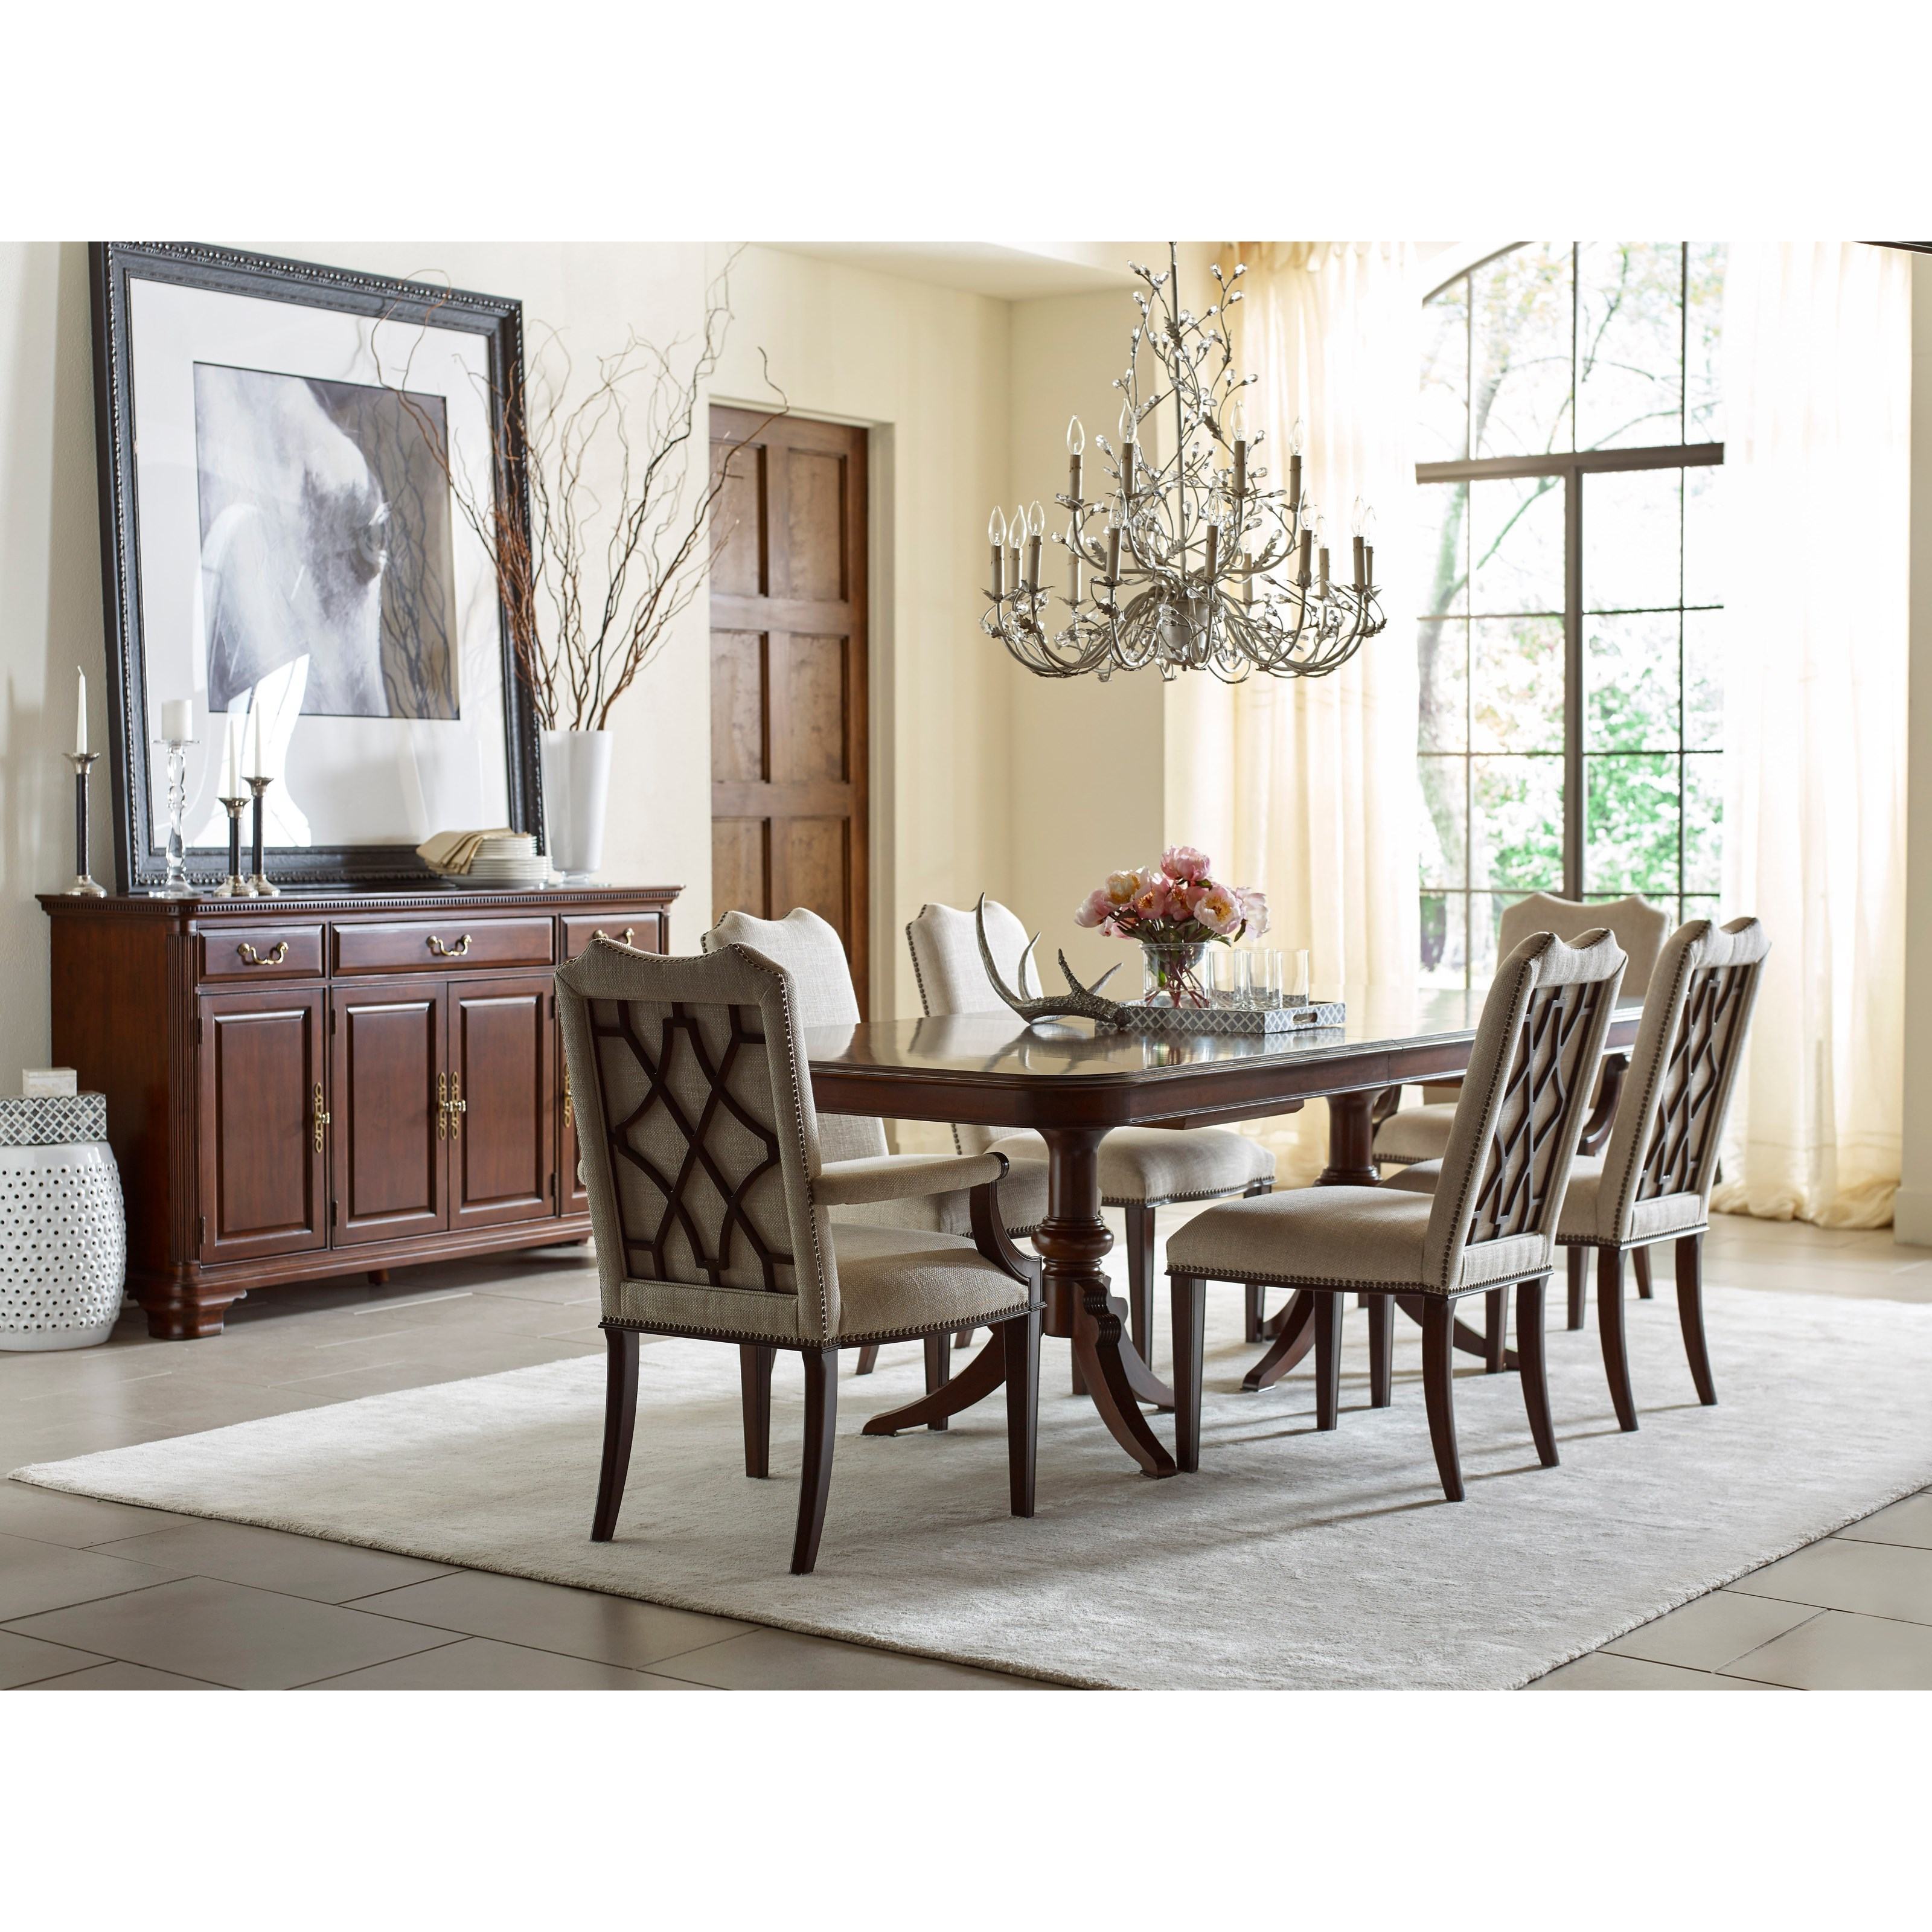 Kincaid furniture hadleigh formal dining room group for The dining room leigh